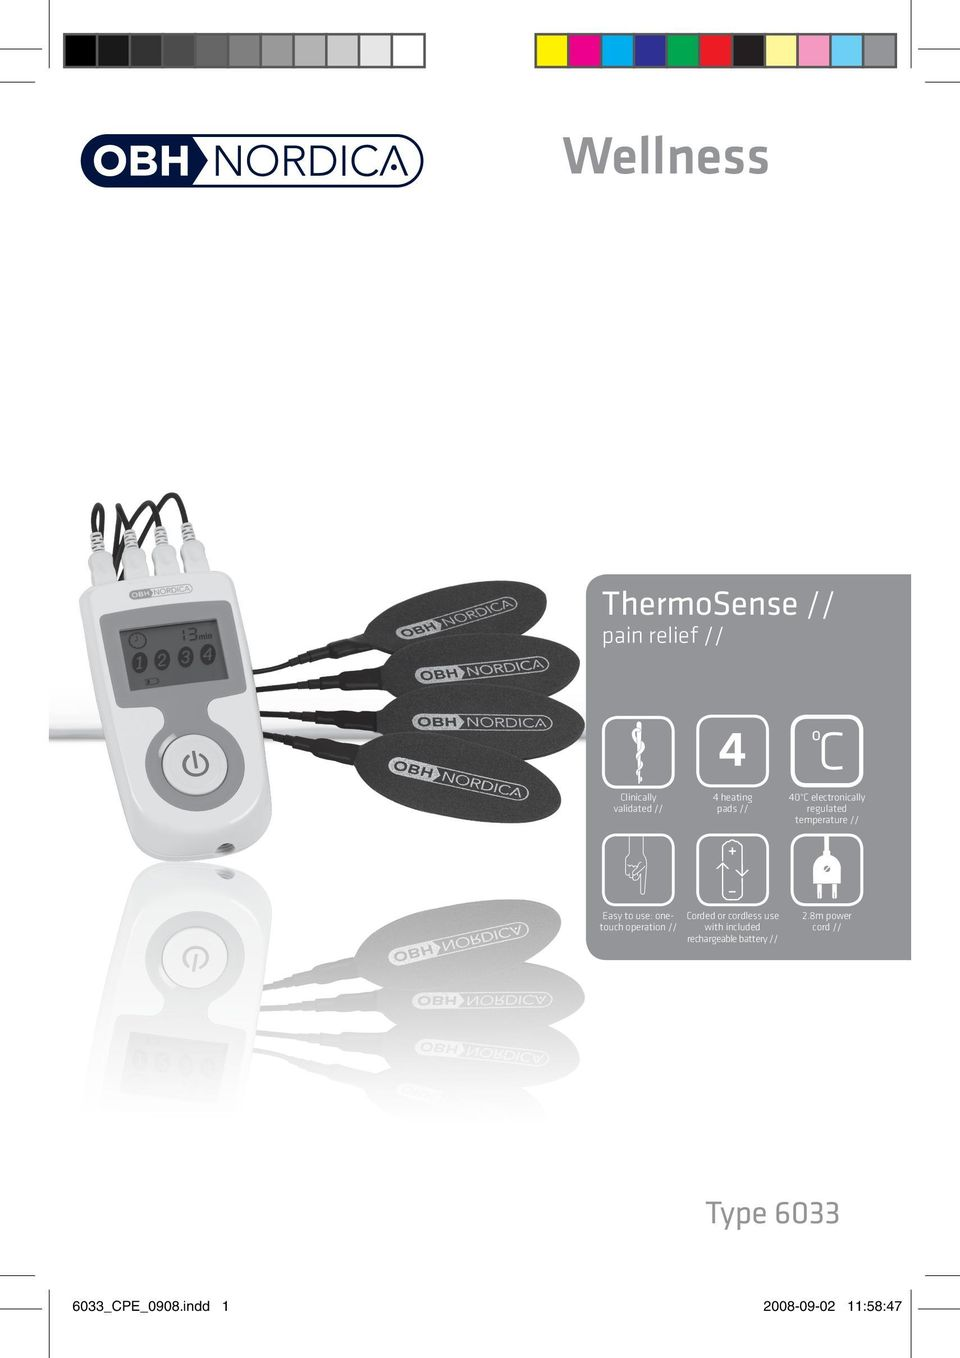 onetouch operation // with included Corded or cordless use rechargeable